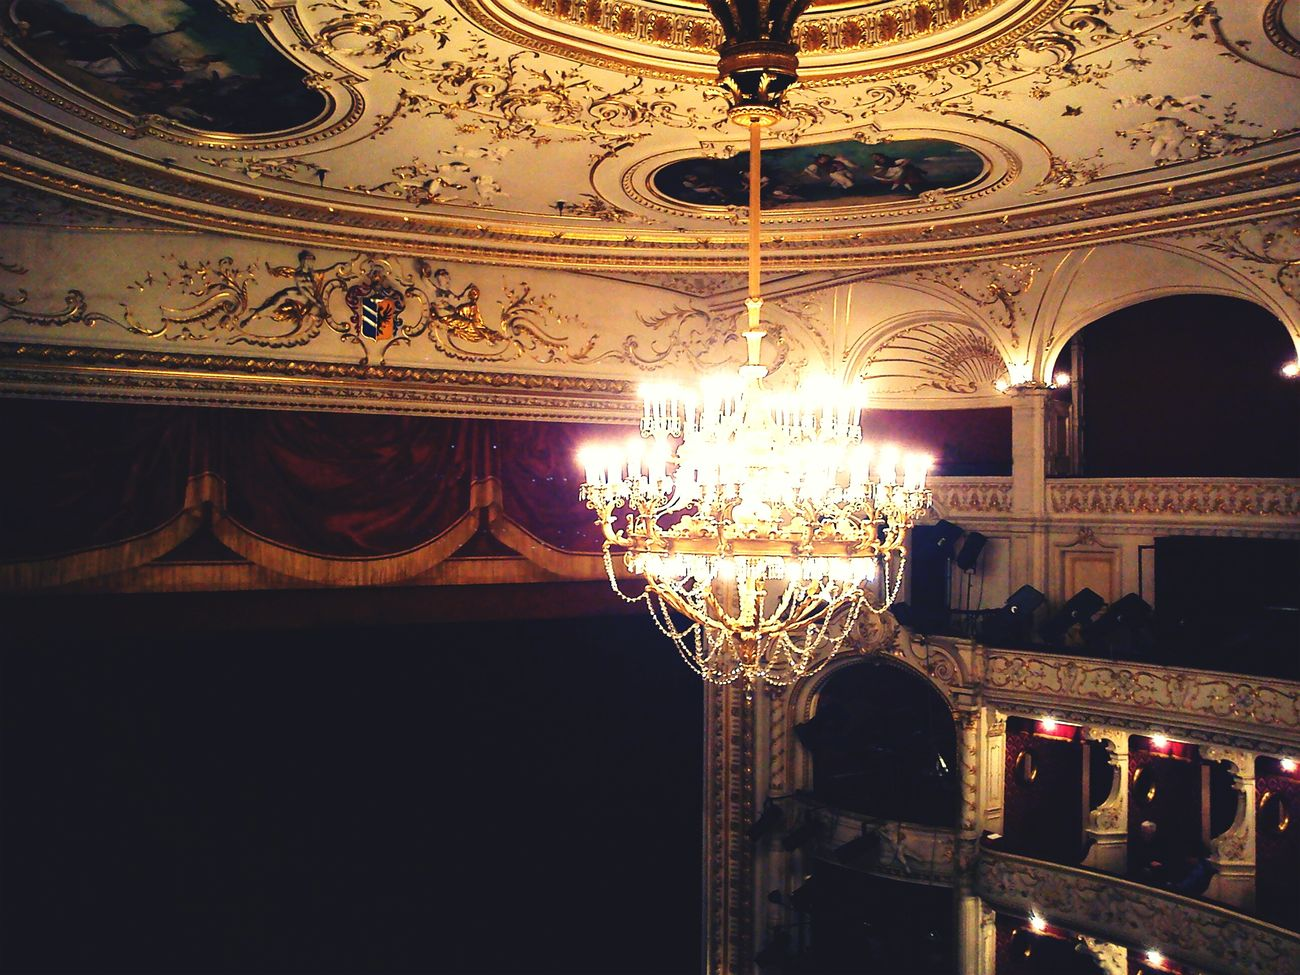 Theatre Chandelier. Szeged Szegedcity Szegedforever♥ Szegedi Hungary Szeged Eyeem Szeged Life In Szeged Theater Light